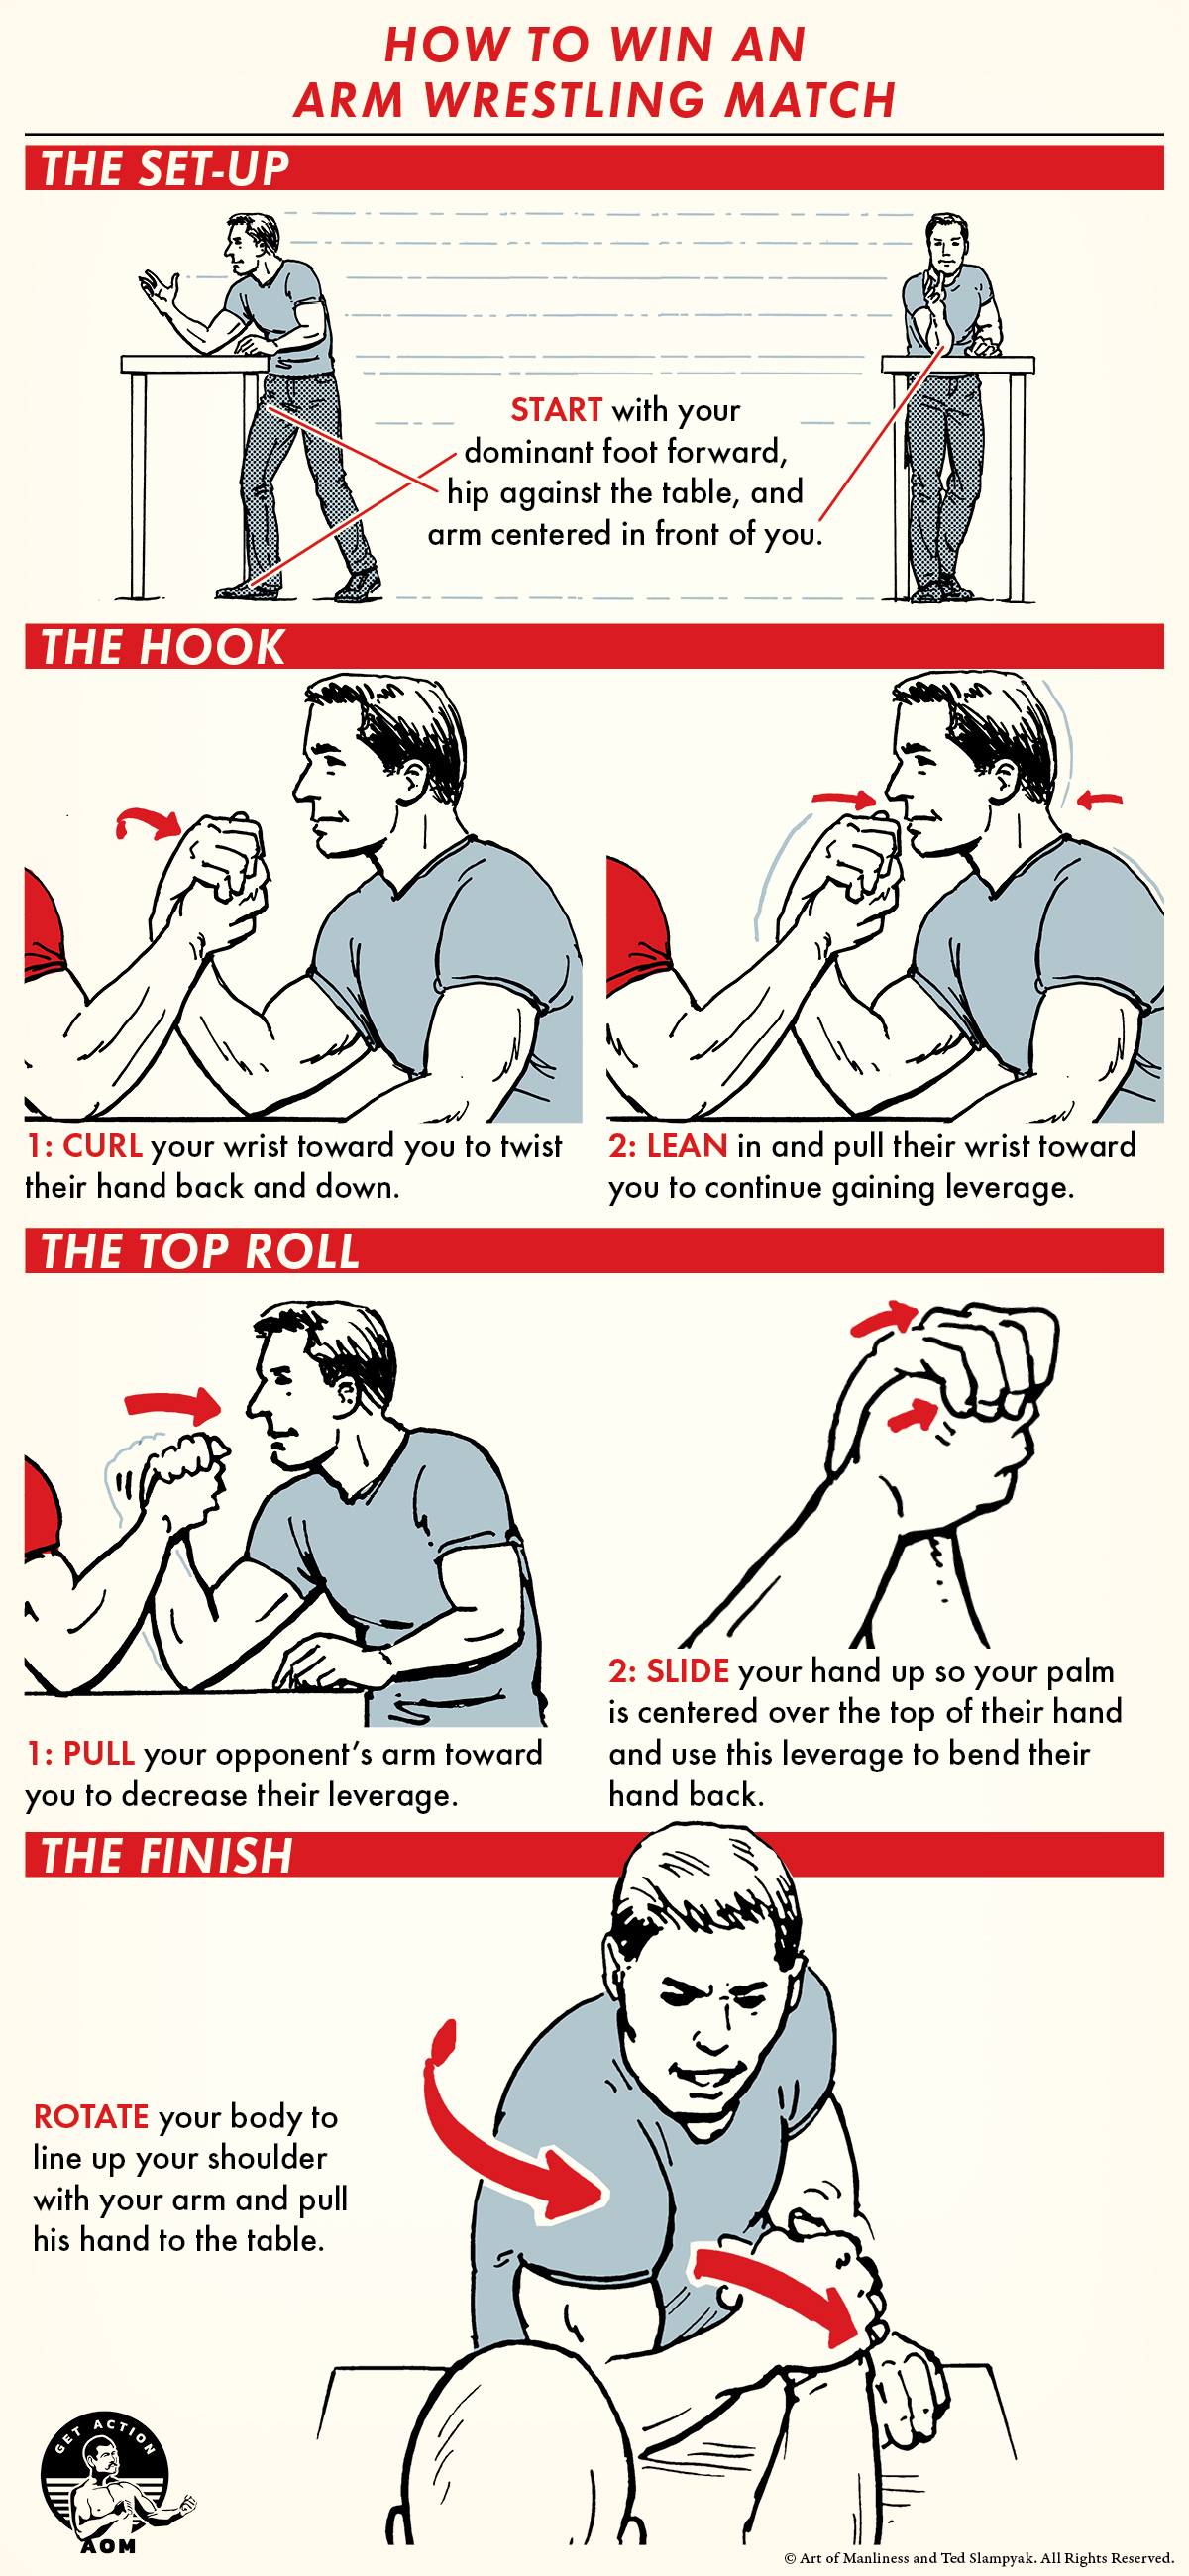 How to win an arm wrestling match comic guide.